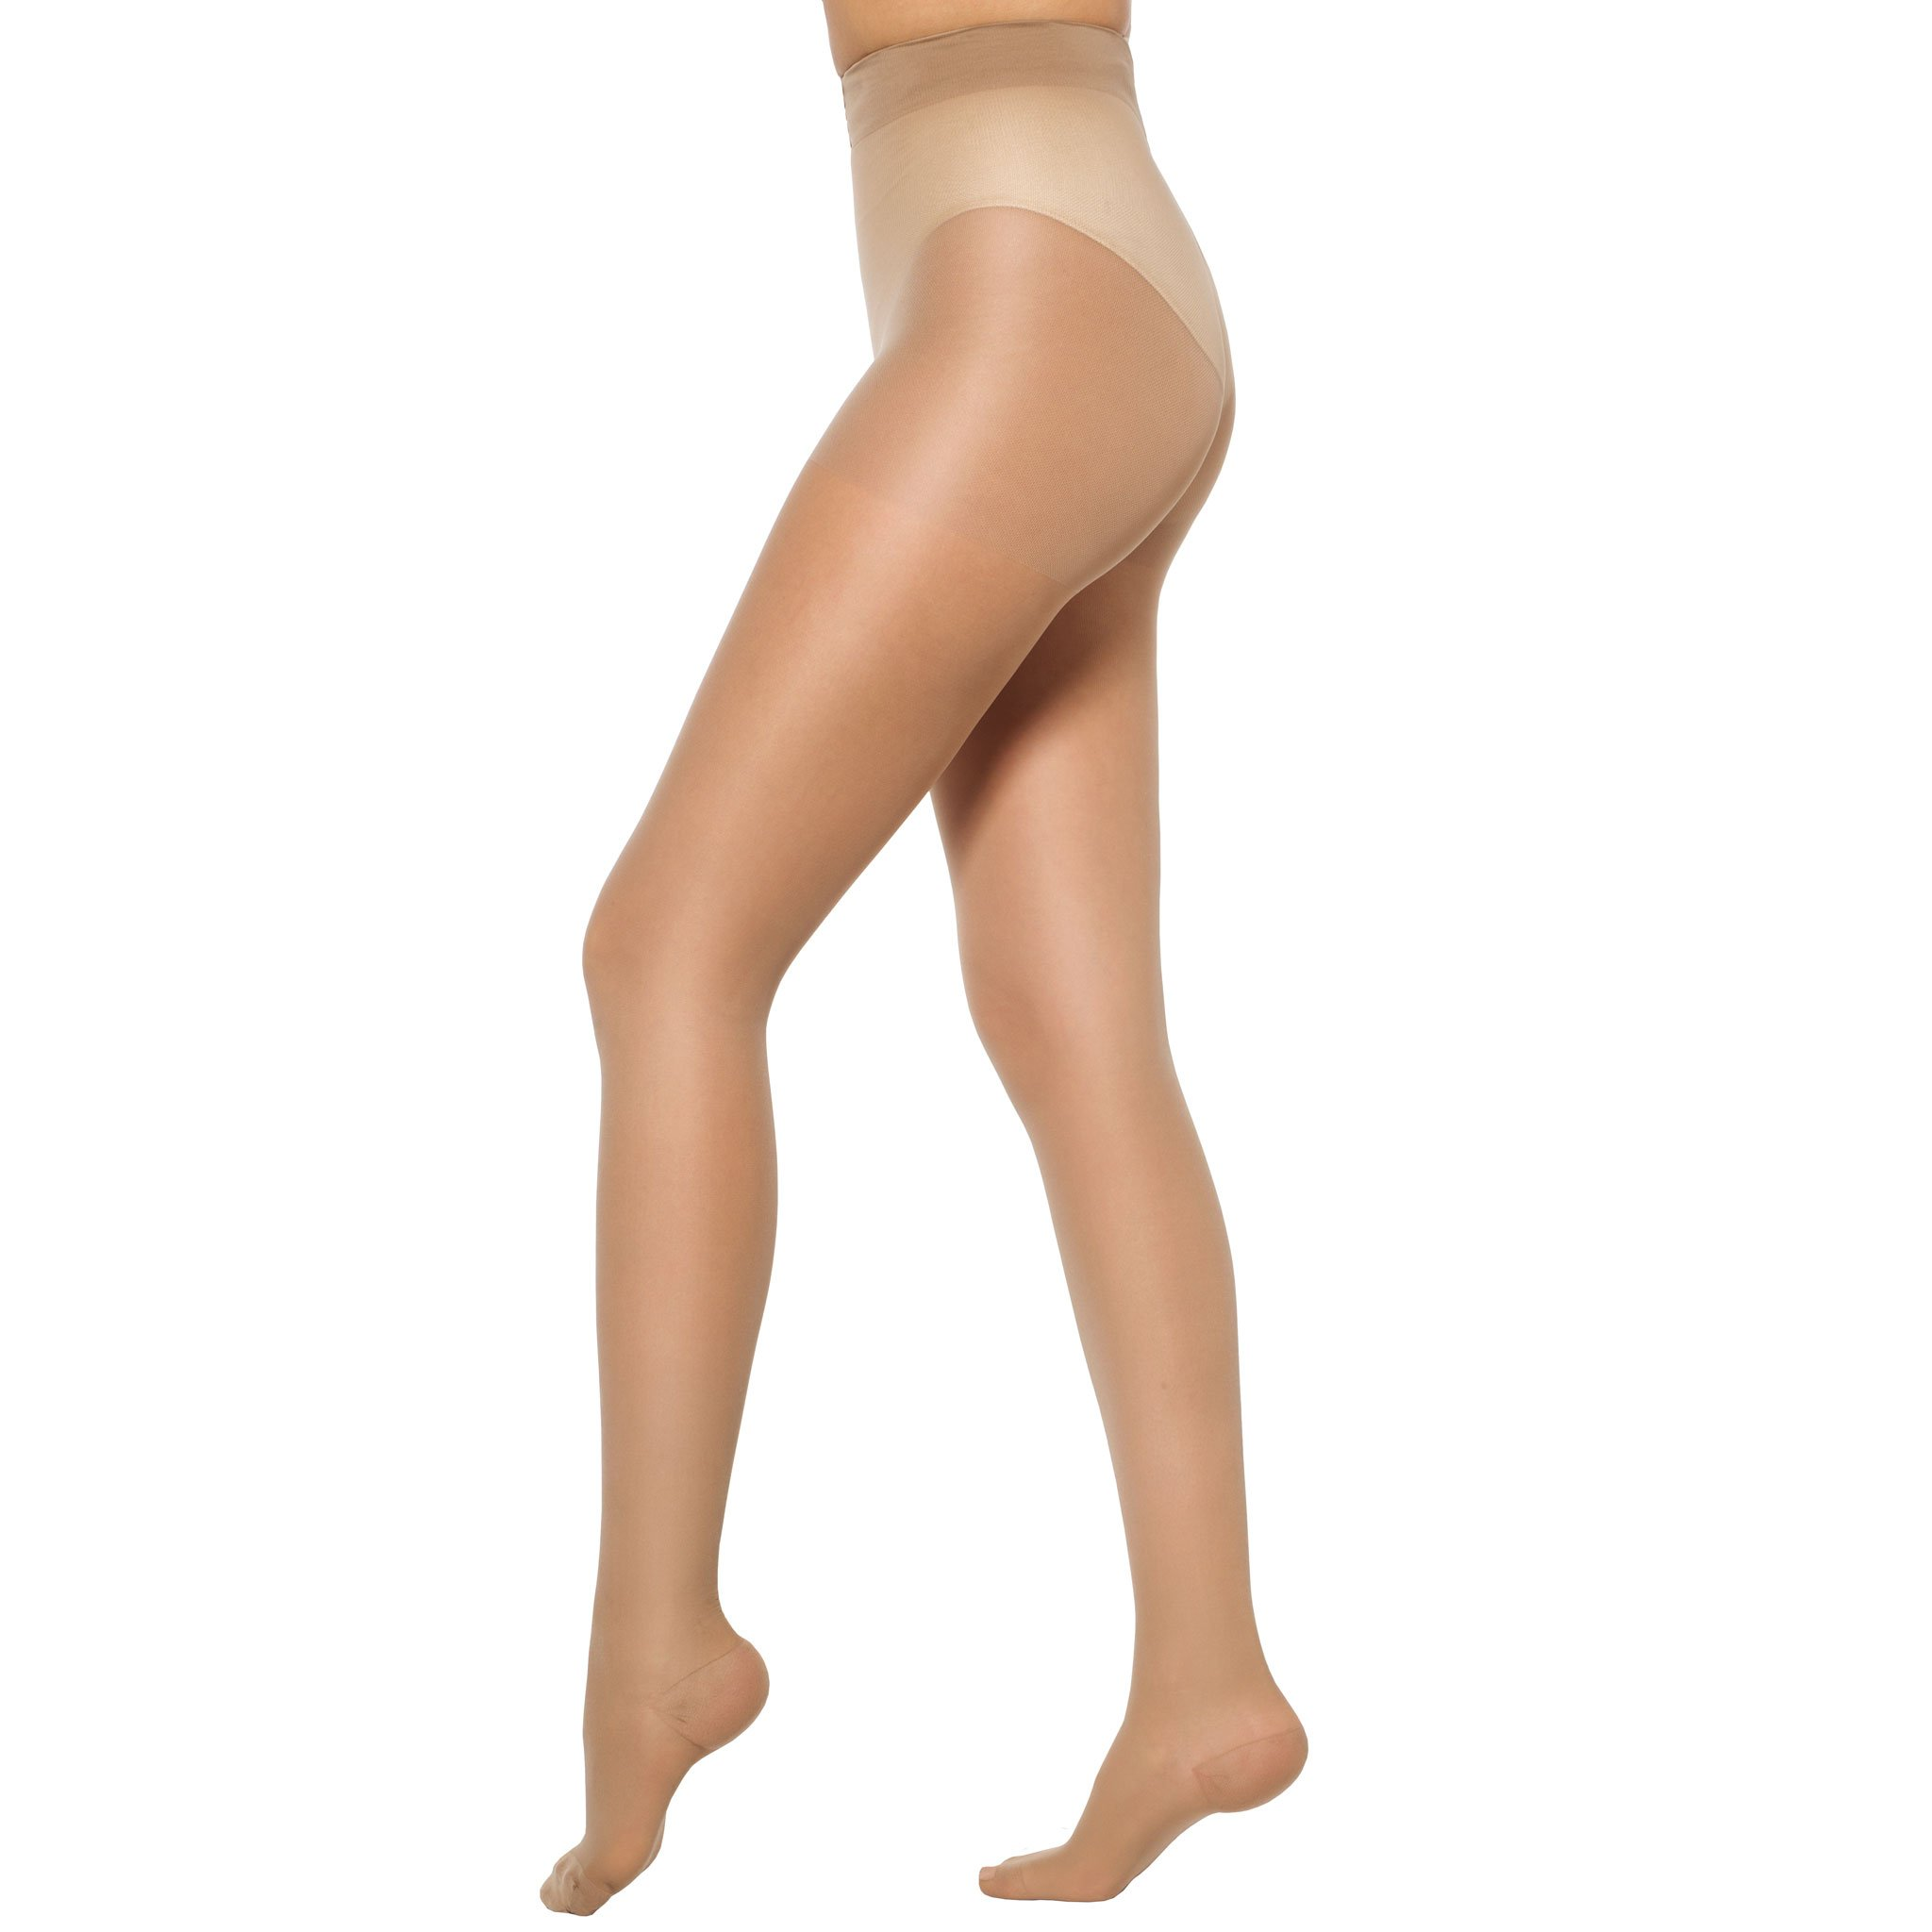 Healthweir Graduated Compression Pantyhose 15-20 mmHg (EU 18-22 mmHg) Class 1 Medical Support Stockings -Made in Italy- Sheer Hosiery for Everyday Use Travel Recovery Nursing & Maternity (4, Skin)